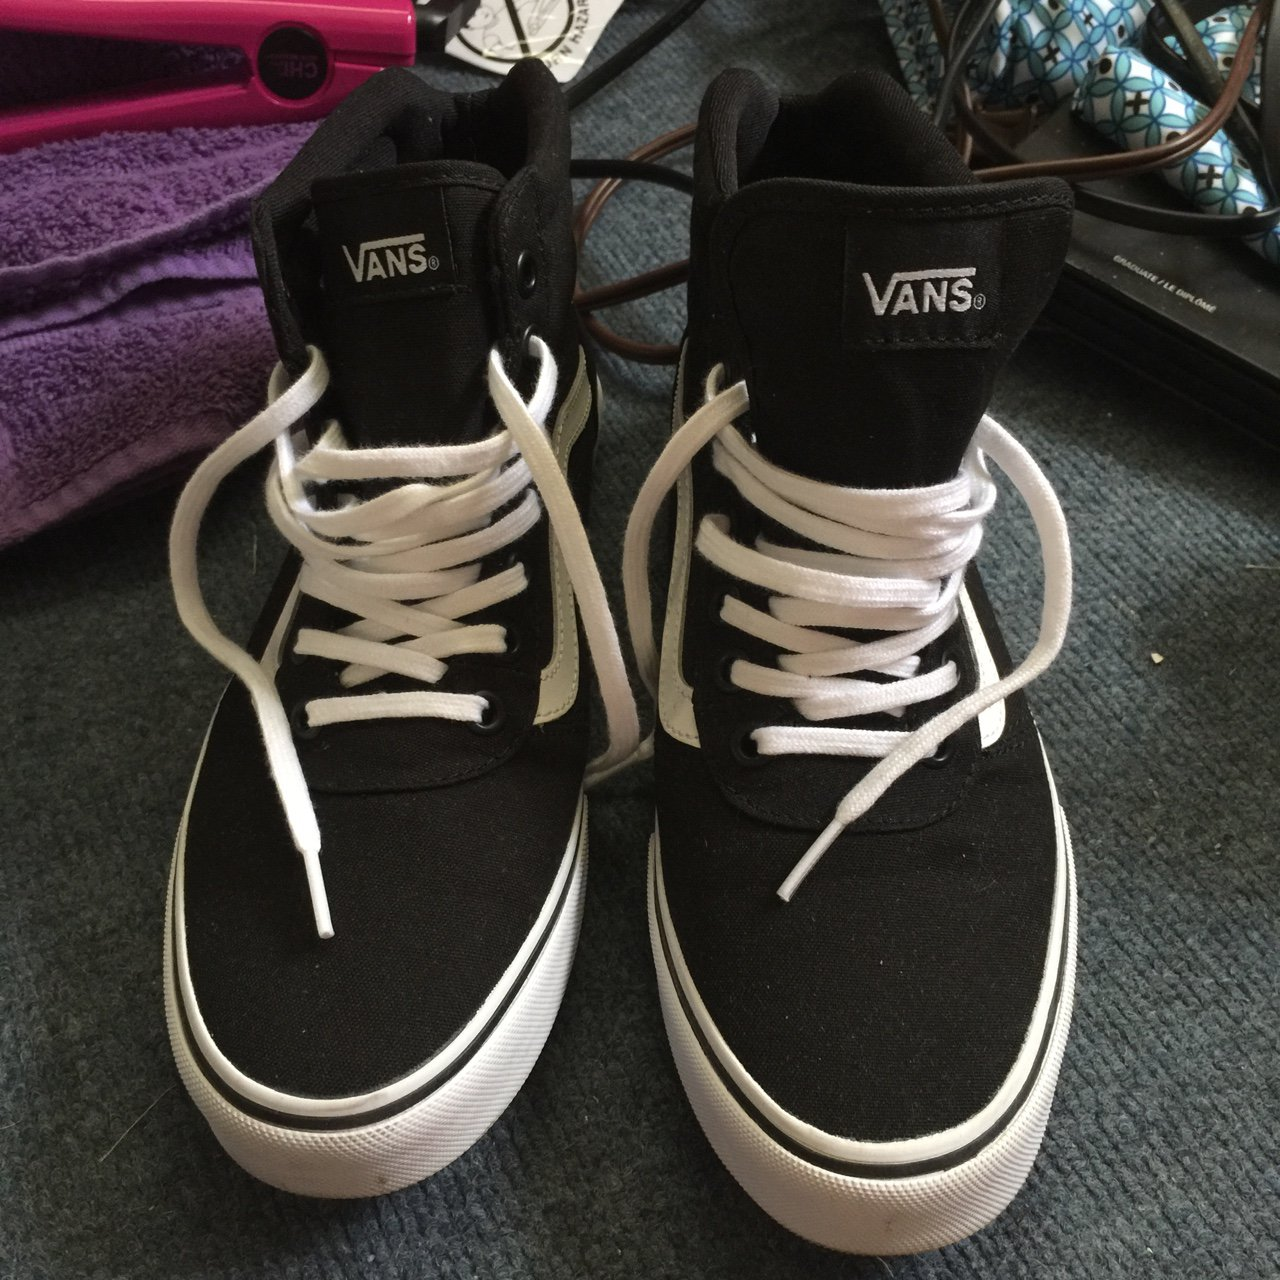 5e8ea568652 Women s Vans Ward Hi. Black white. Size  8.5. Worn only but - Depop